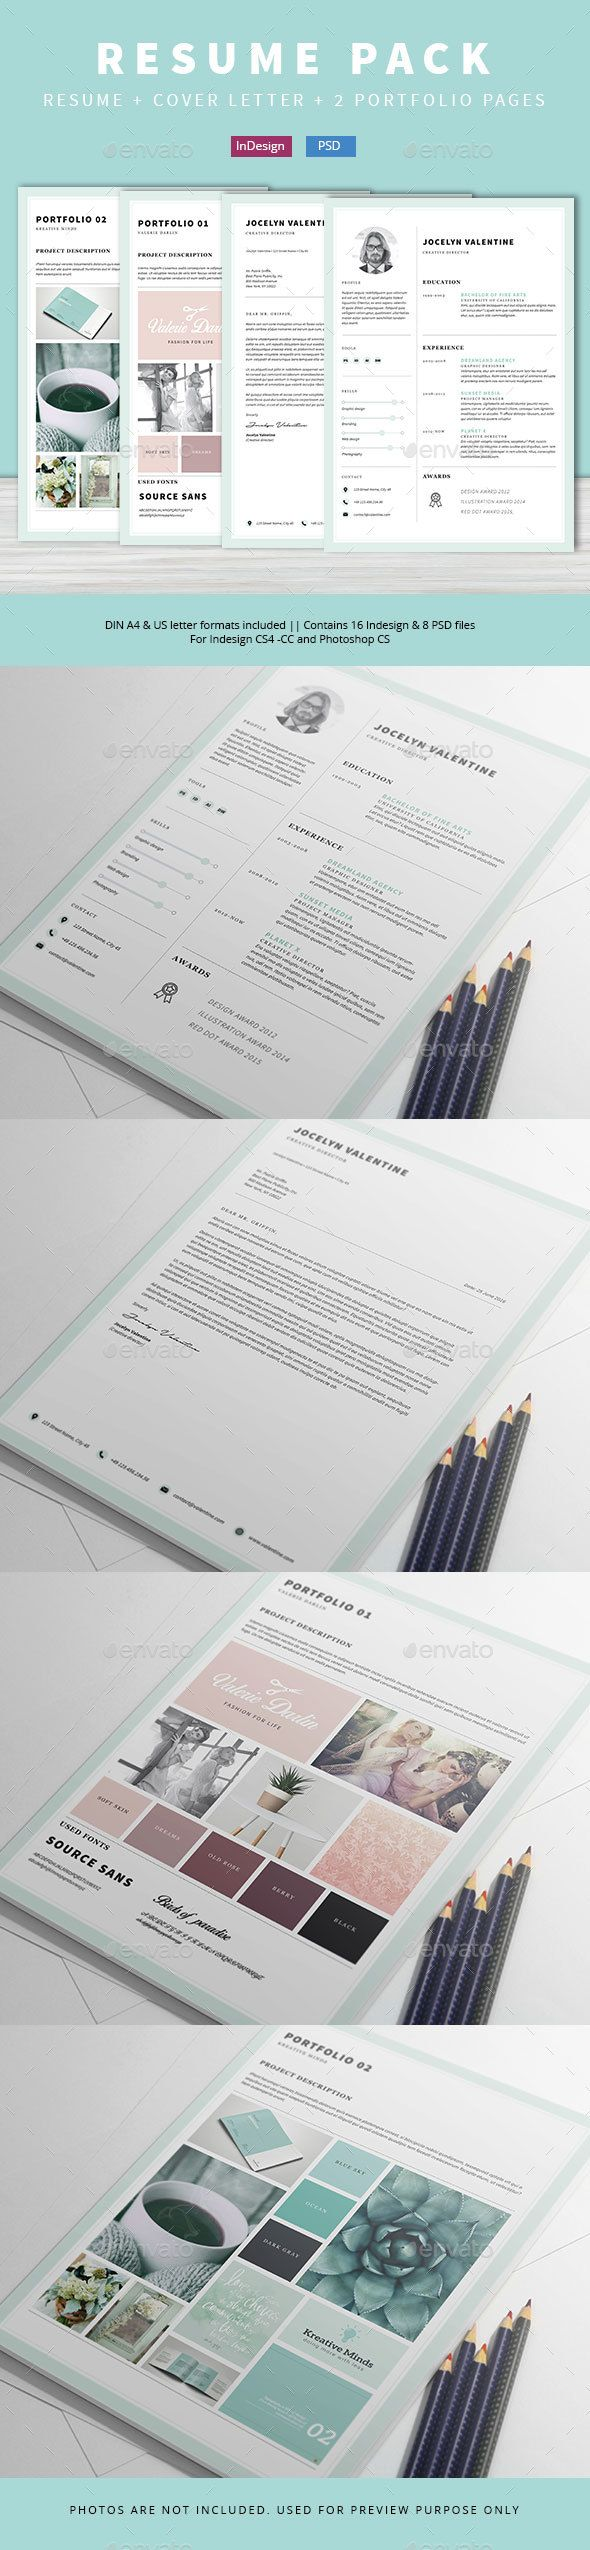 4 Pieces Resume 392 best resumes images